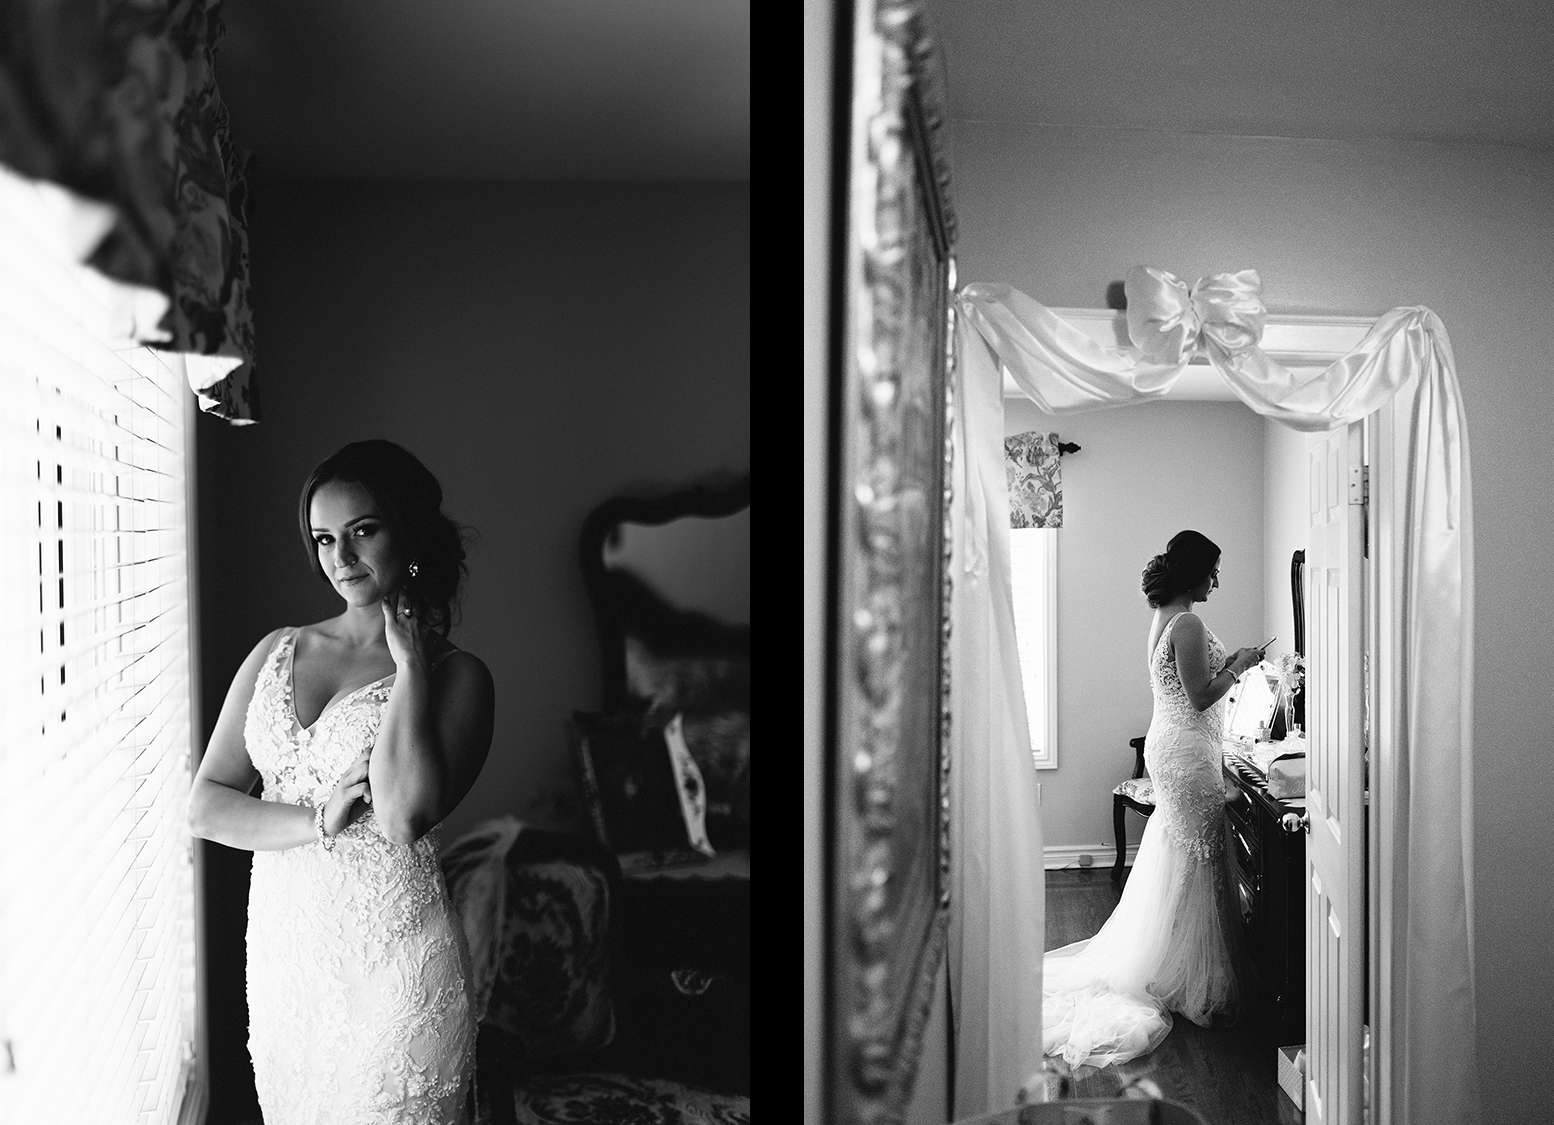 spread-15-Liberty-Grand-Wedding-Best-Toronto-Wedding-Photographers-Analog-Film-Vintage-Bride-getting-ready-in-her-childhood-home-portrait-of-vintage-aethestic-bride-style-bw.jpg